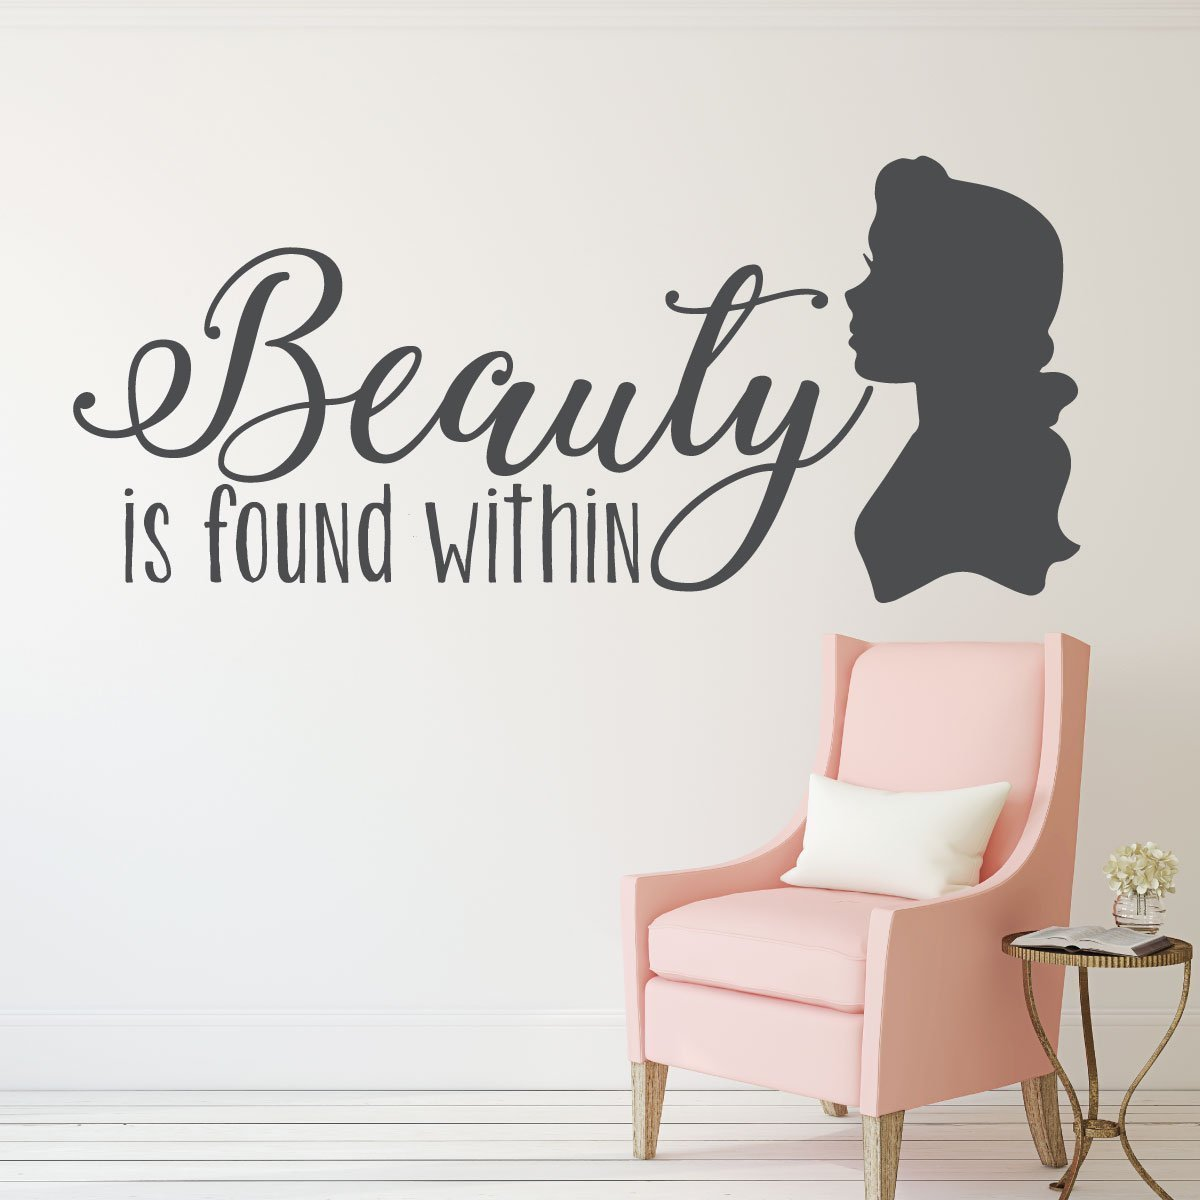 Disney Princesses Wall Decoration- BELLE - Beauty Found Within -Home Decor For the Playroom, Child Room, or Nursery, Wall Art